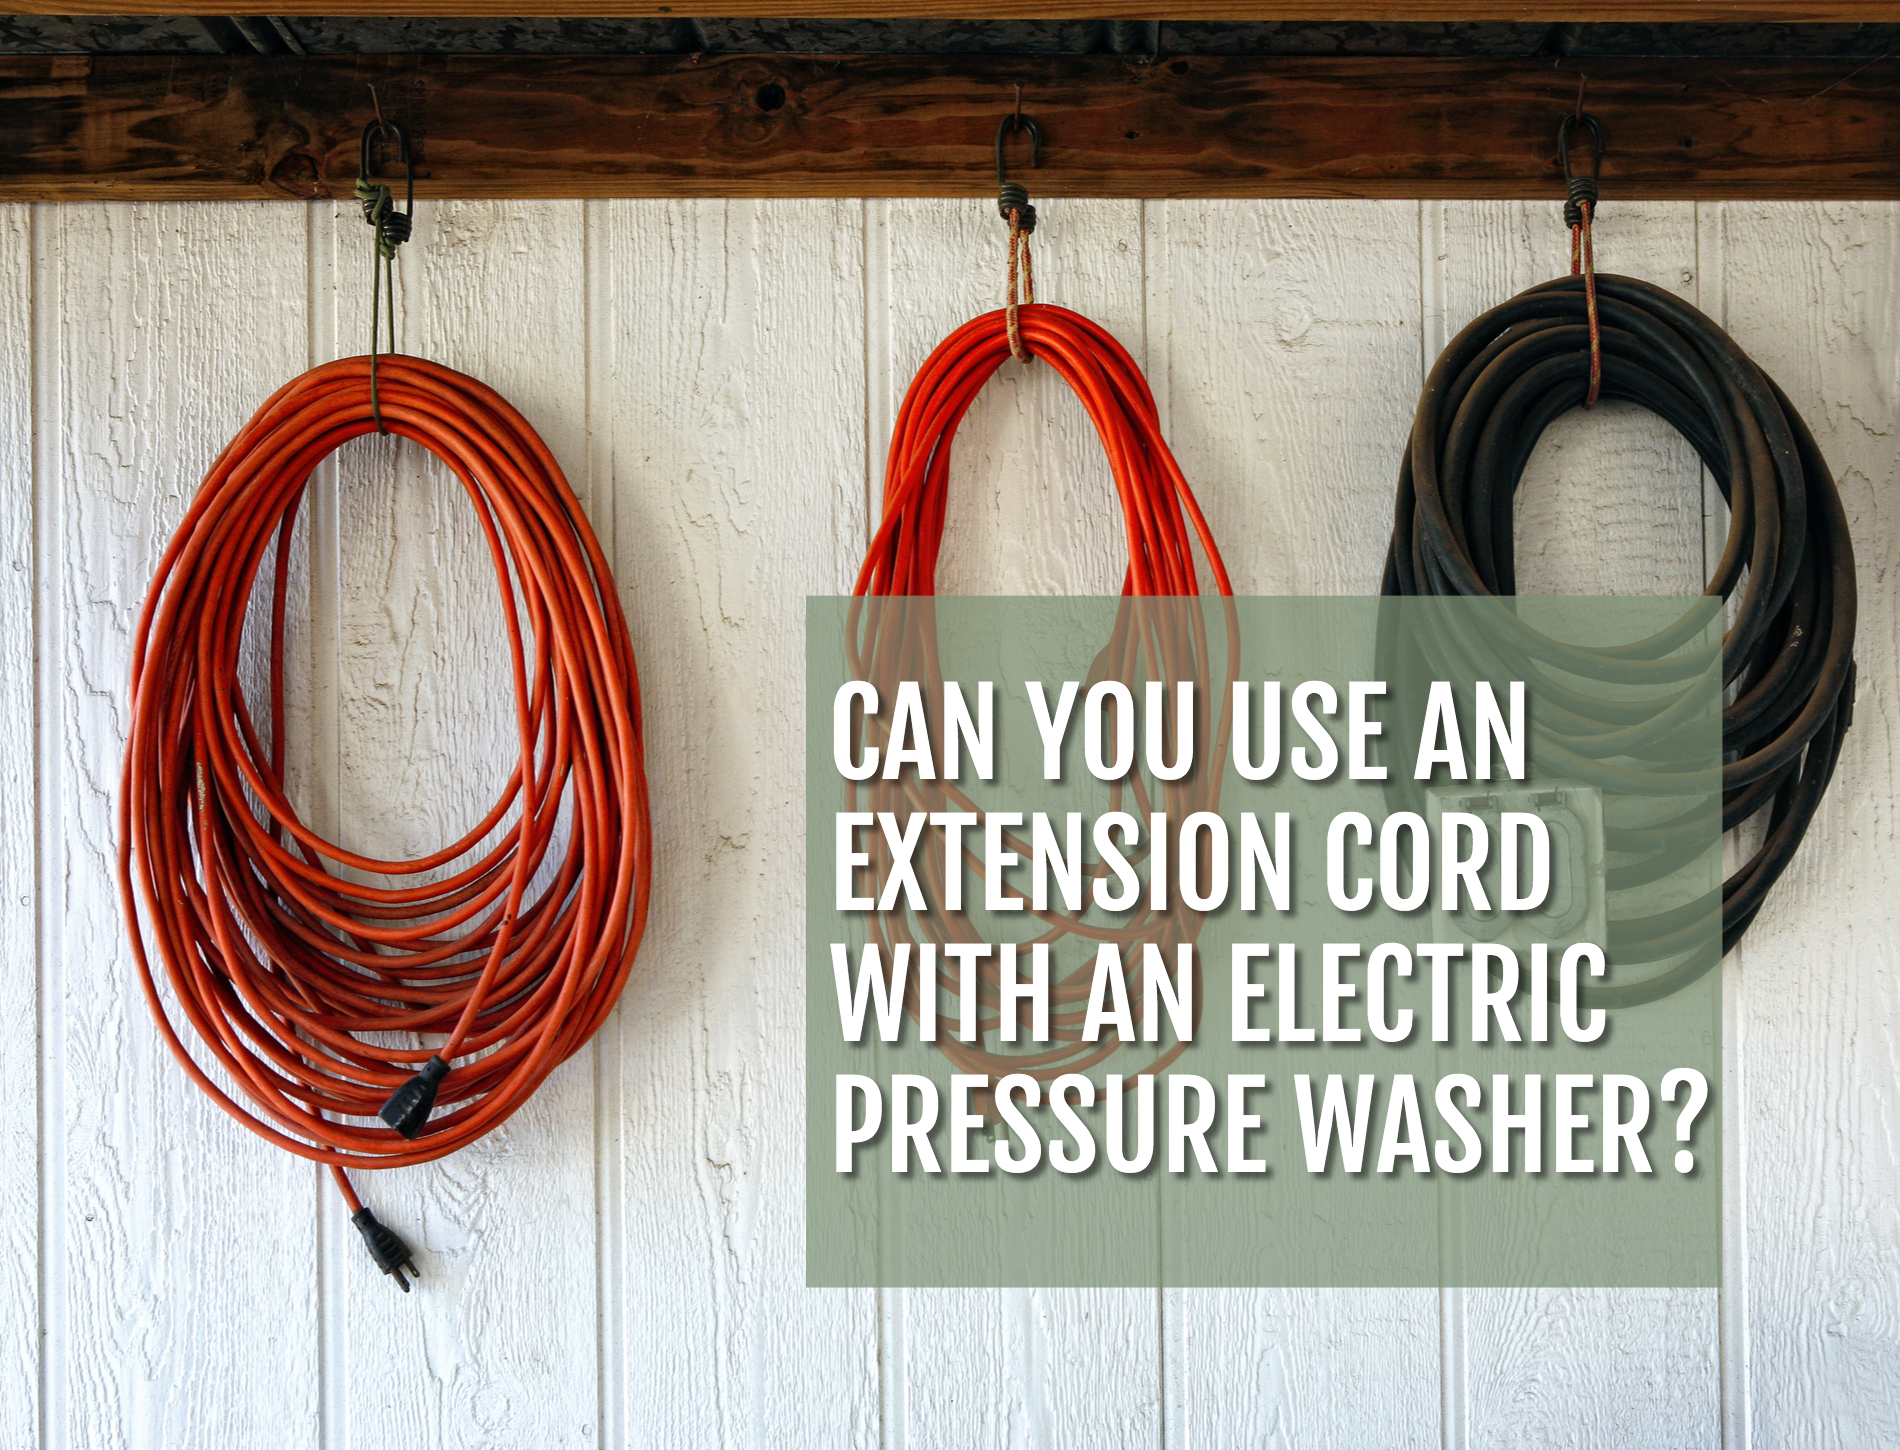 Can You Use An Extension Cord With An Electric Pressure Washer